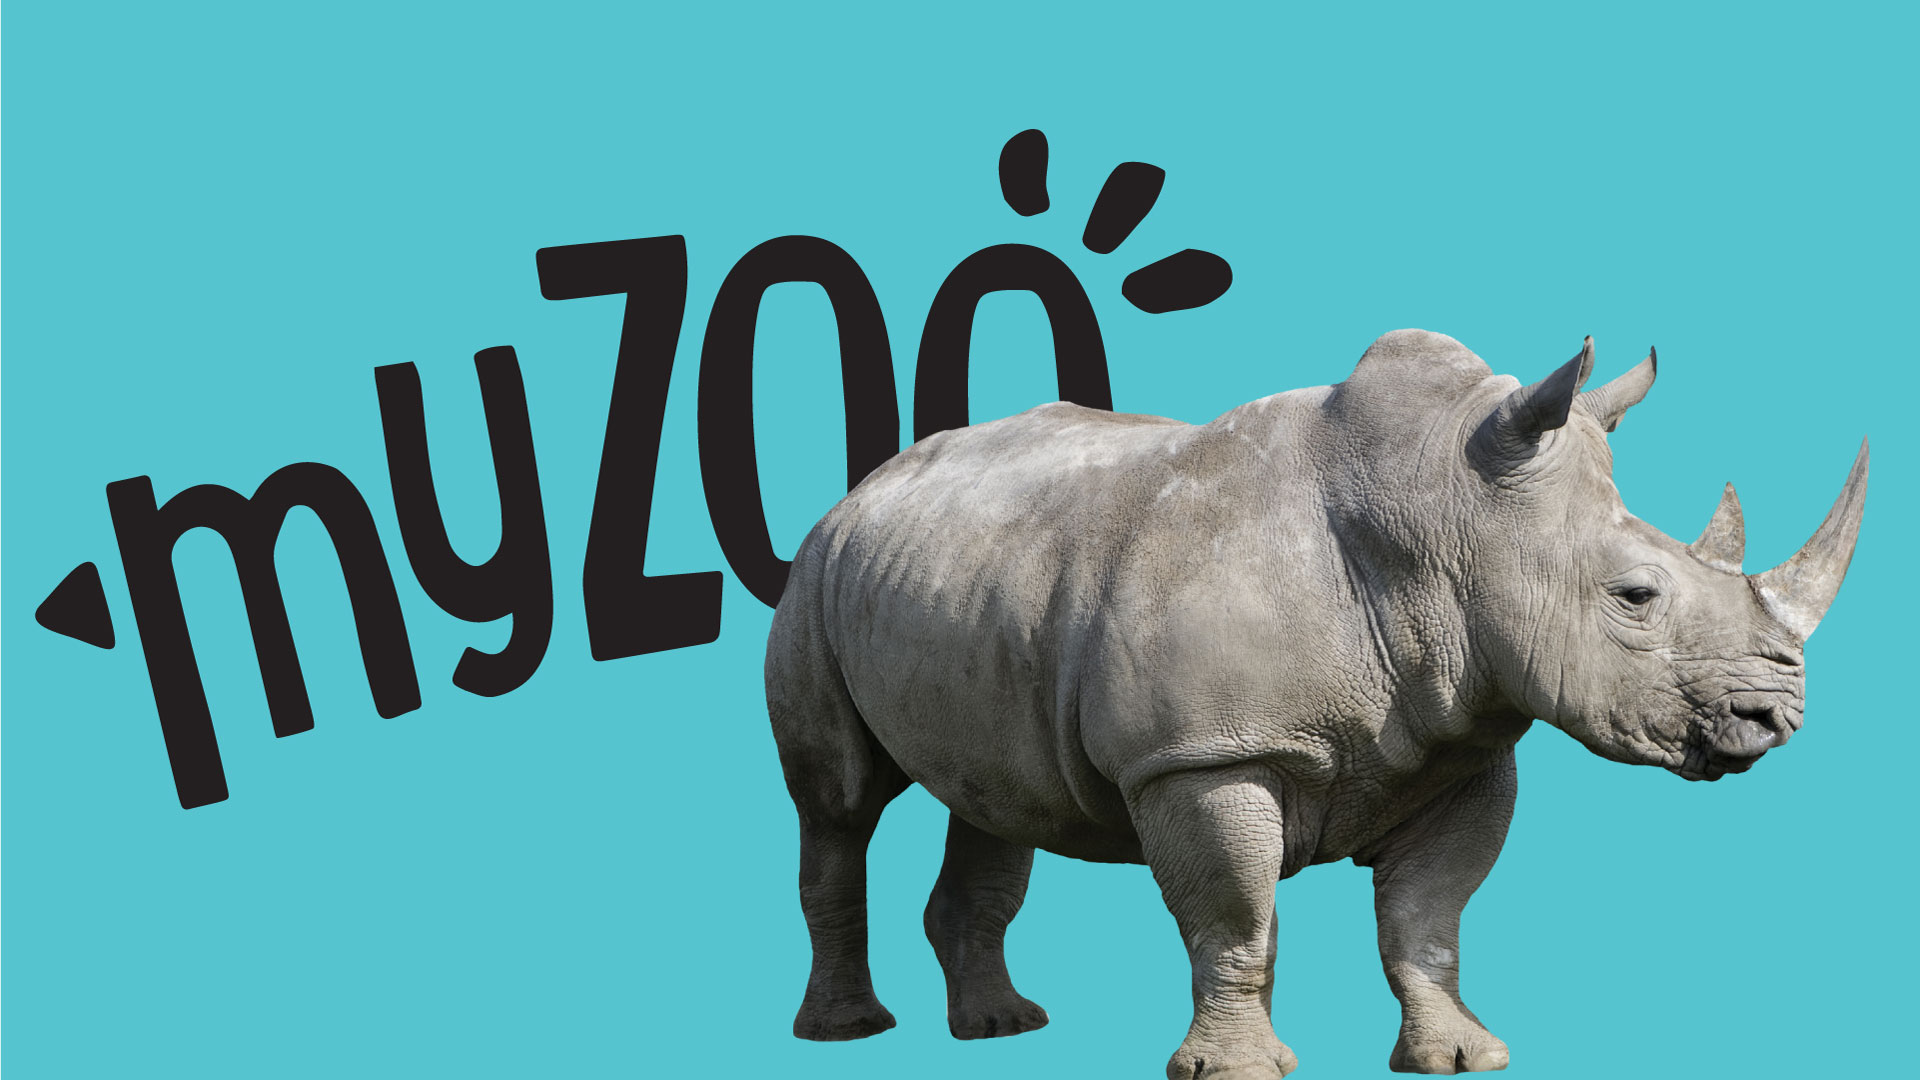 https://rfacdn.nz/zoo/assets/media/azoo-myzoo-rhino.jpg